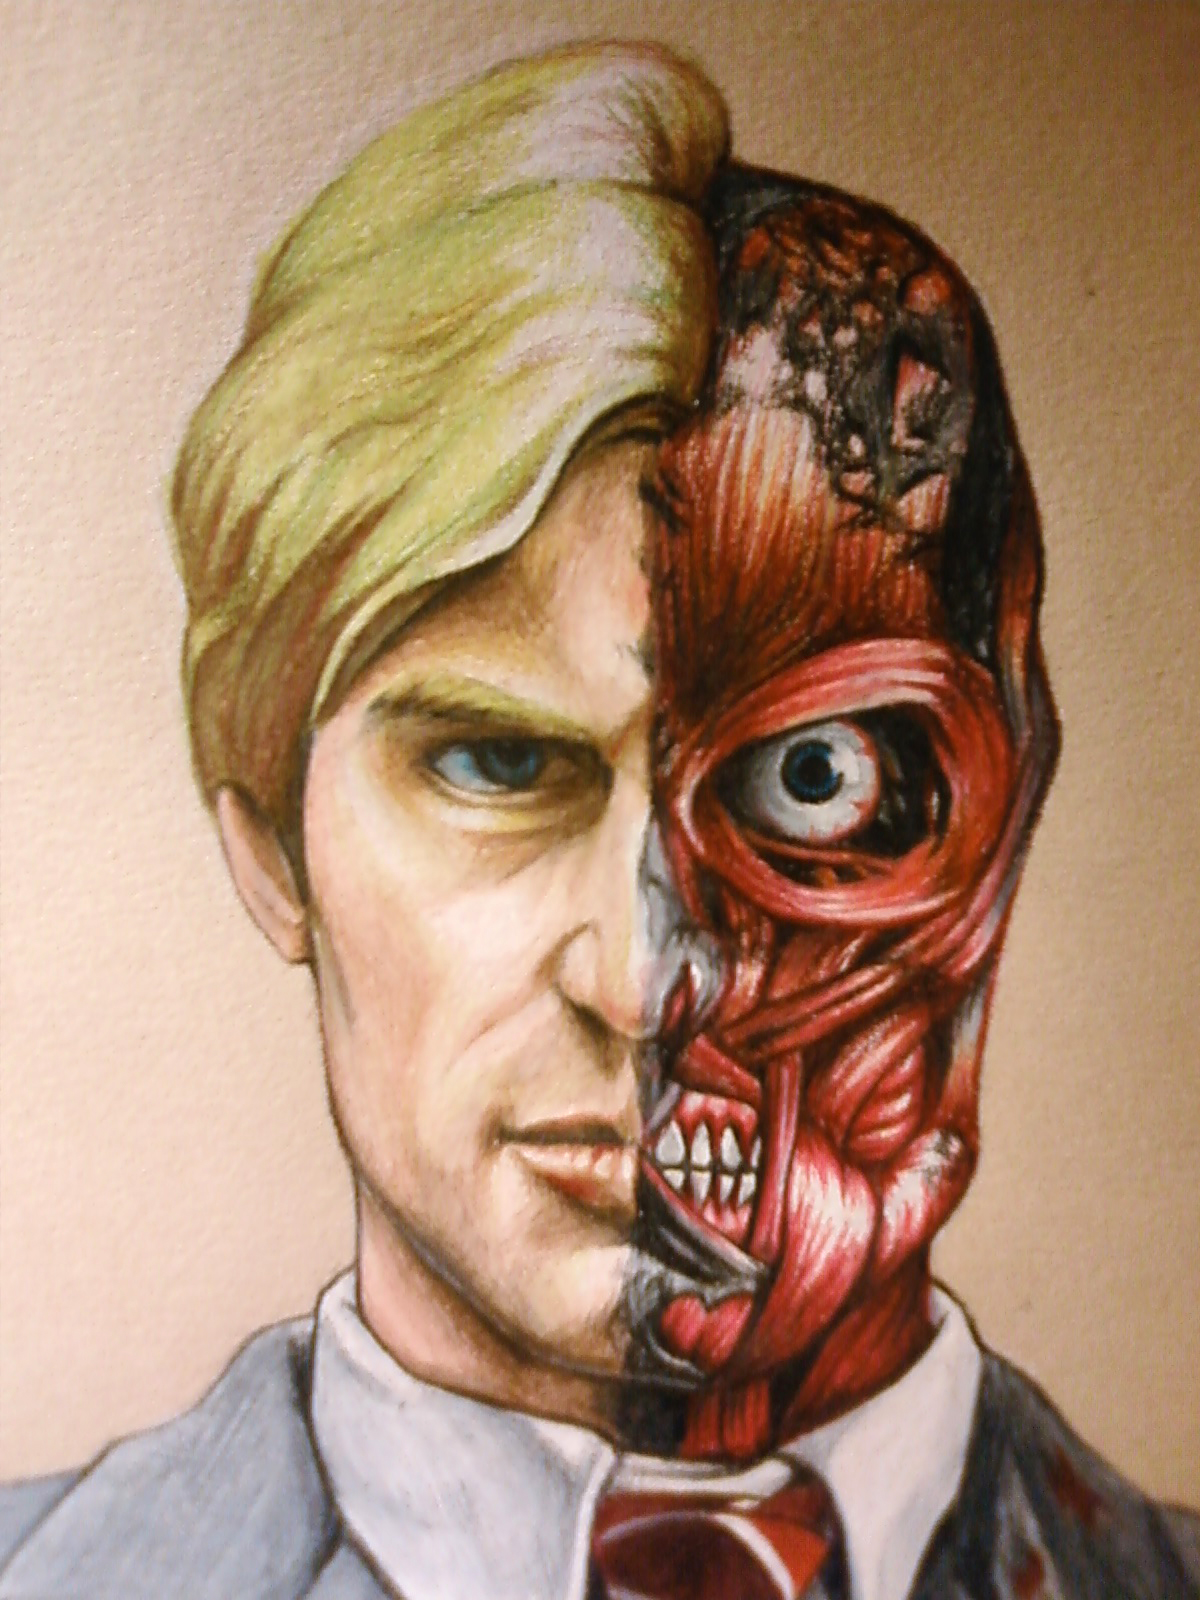 Two-face For BIO By Egonschiele90 On DeviantArt